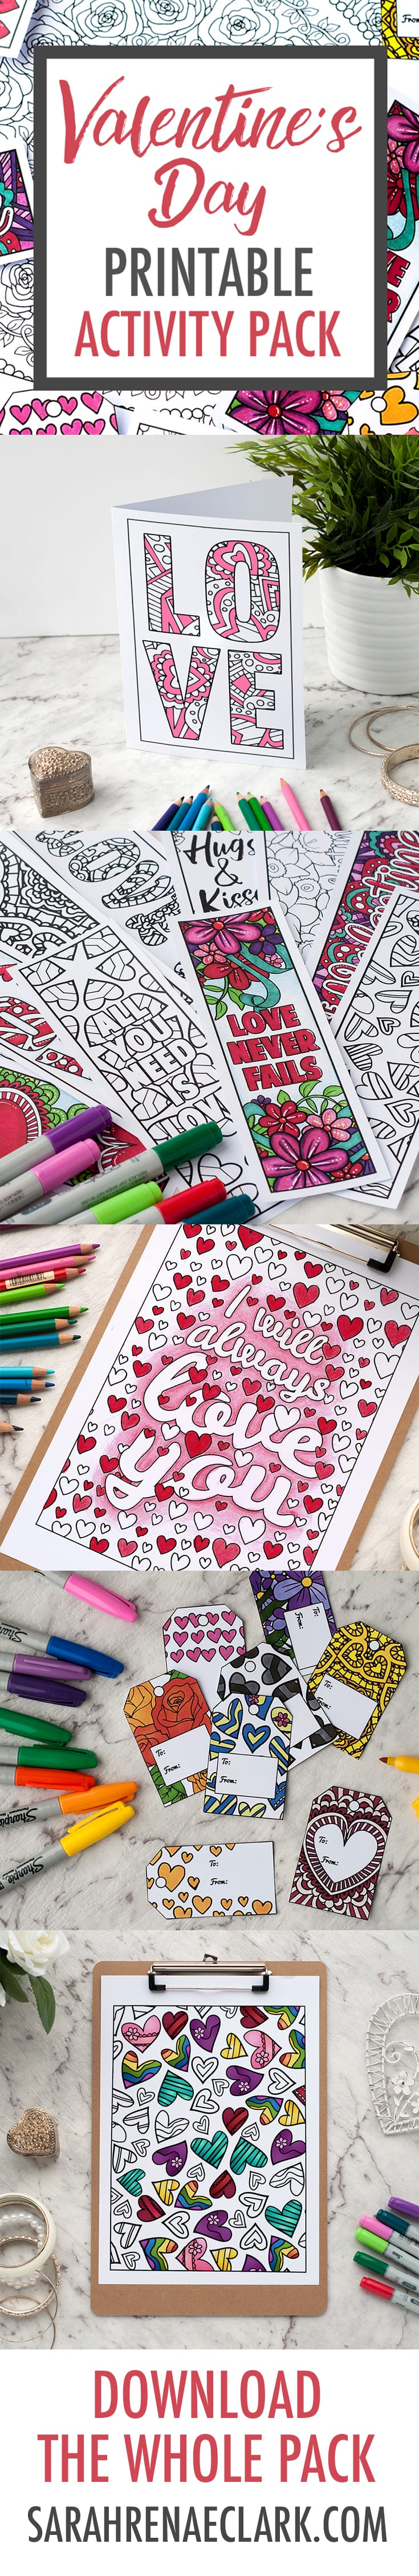 Valentine's Day Printable Activity Pack | Full of Valentine's Day coloring printables - coloring pages, bookmarks, gift tags, Valentine Cards, DIY gift bags | Find more Valentine's coloring page craft templates at www.sarahrenaeclark.com| Valentine's Day Craft, DIY Valentine's Day, Valentine's Day activity, DIY craft, free craft template, printable coloring pages